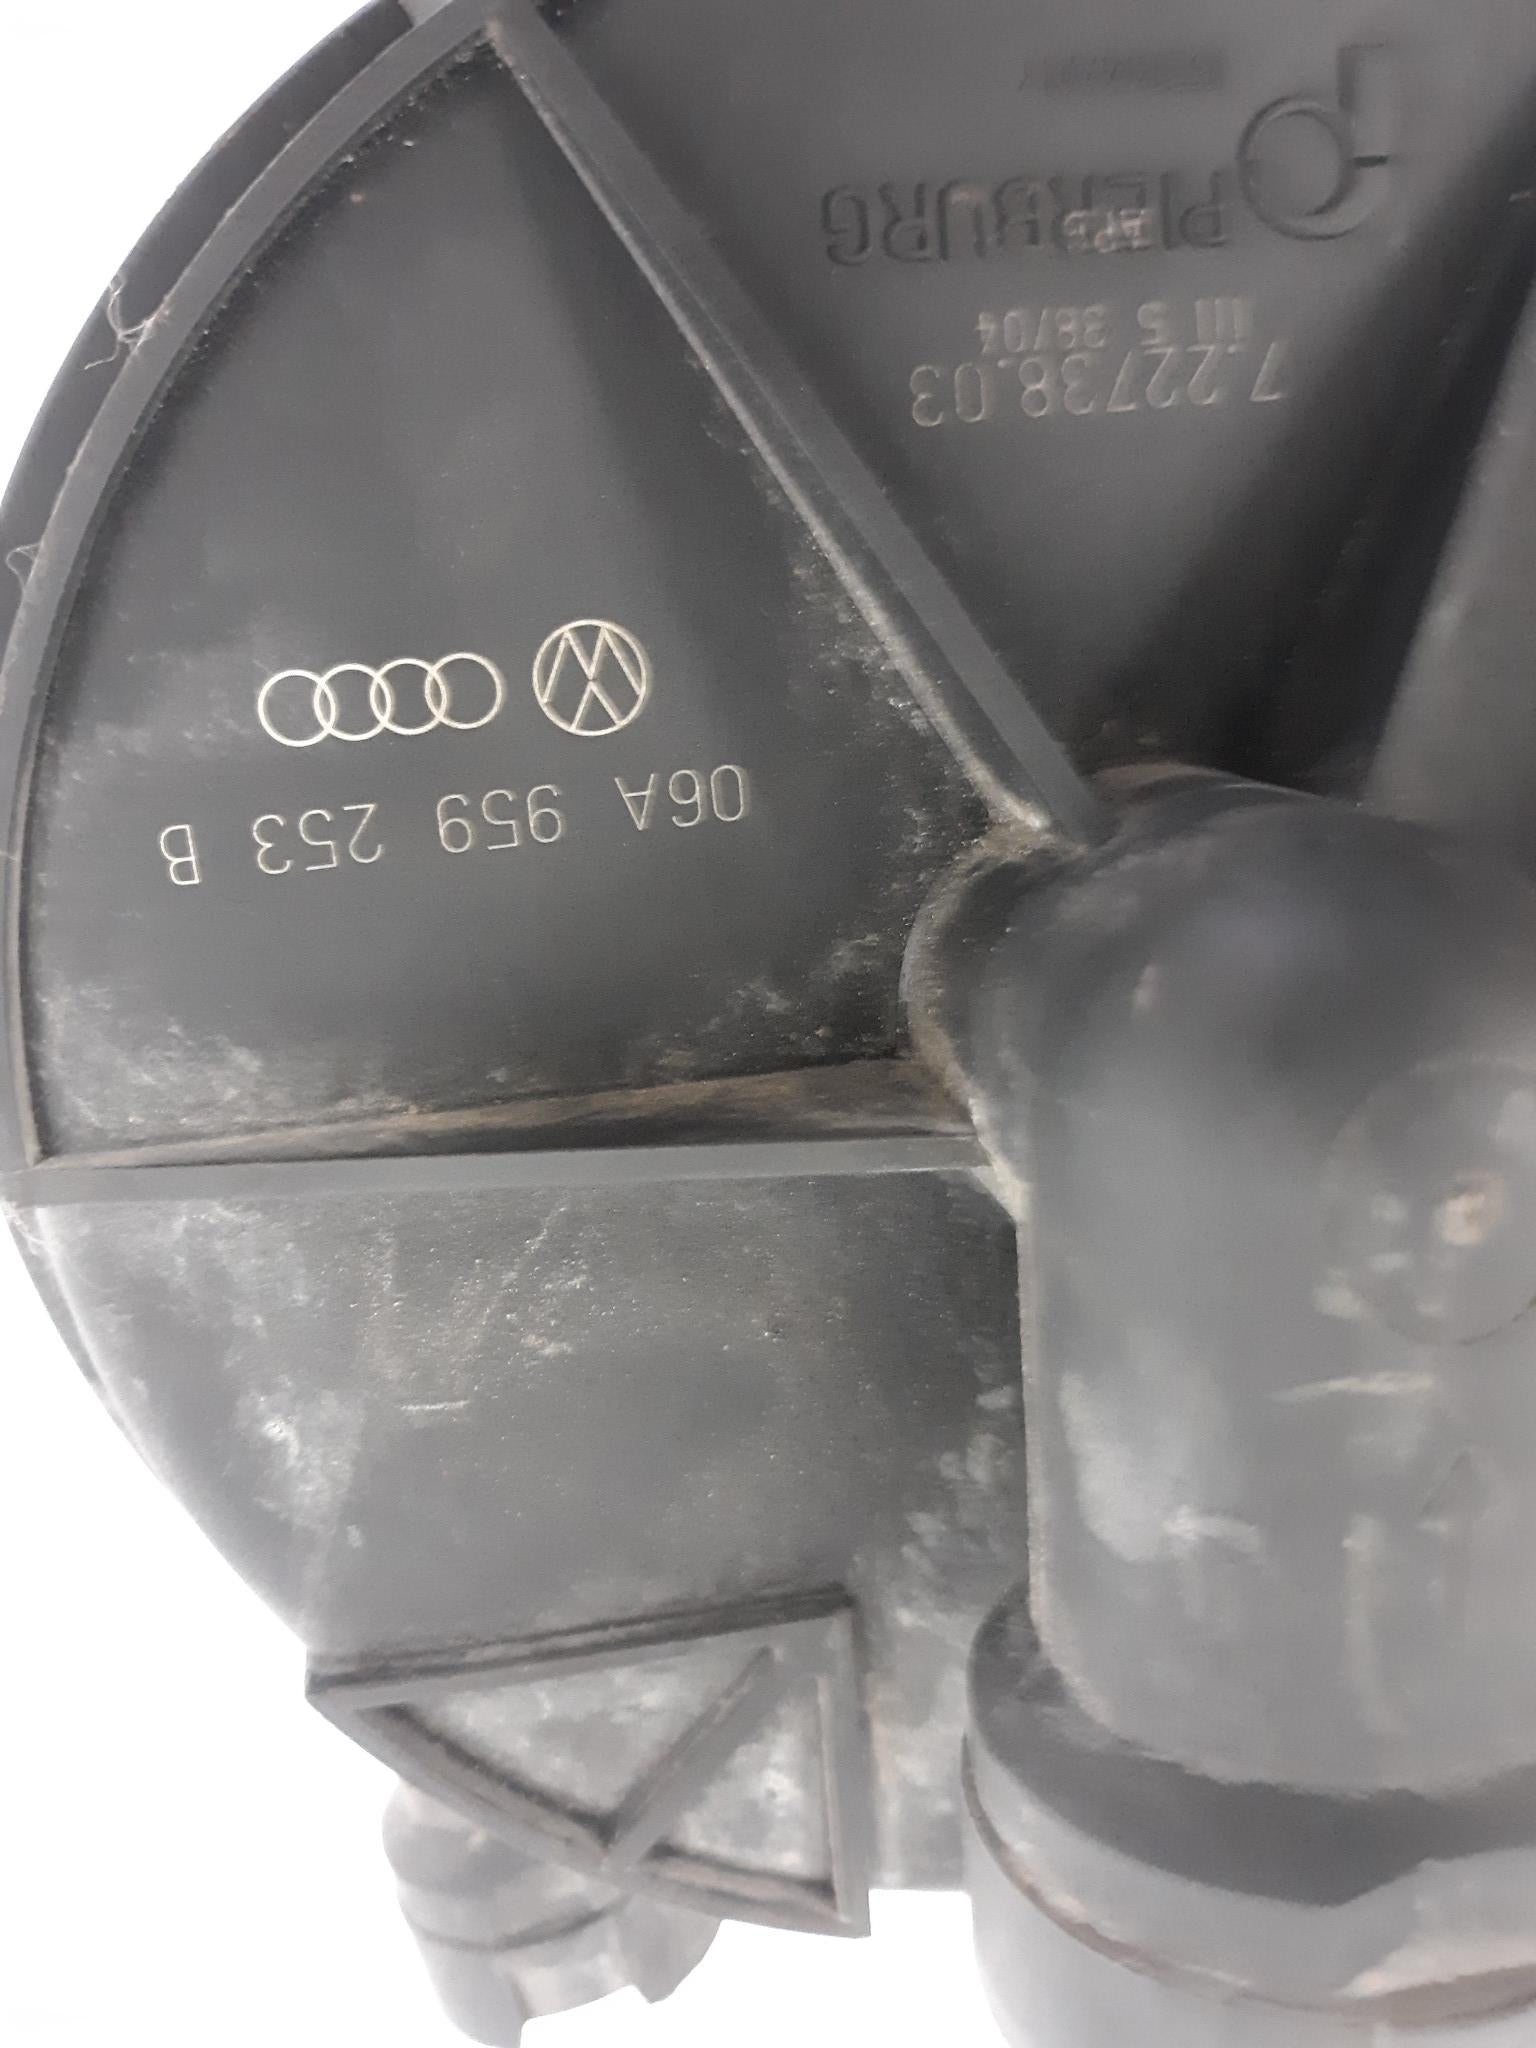 00 - 10 AUDI A4 A8 TT VW TOUAREG GOLF JETTA PASSAT AIR INJECTION PUMP 06A959253 - Click Receive Auto Parts